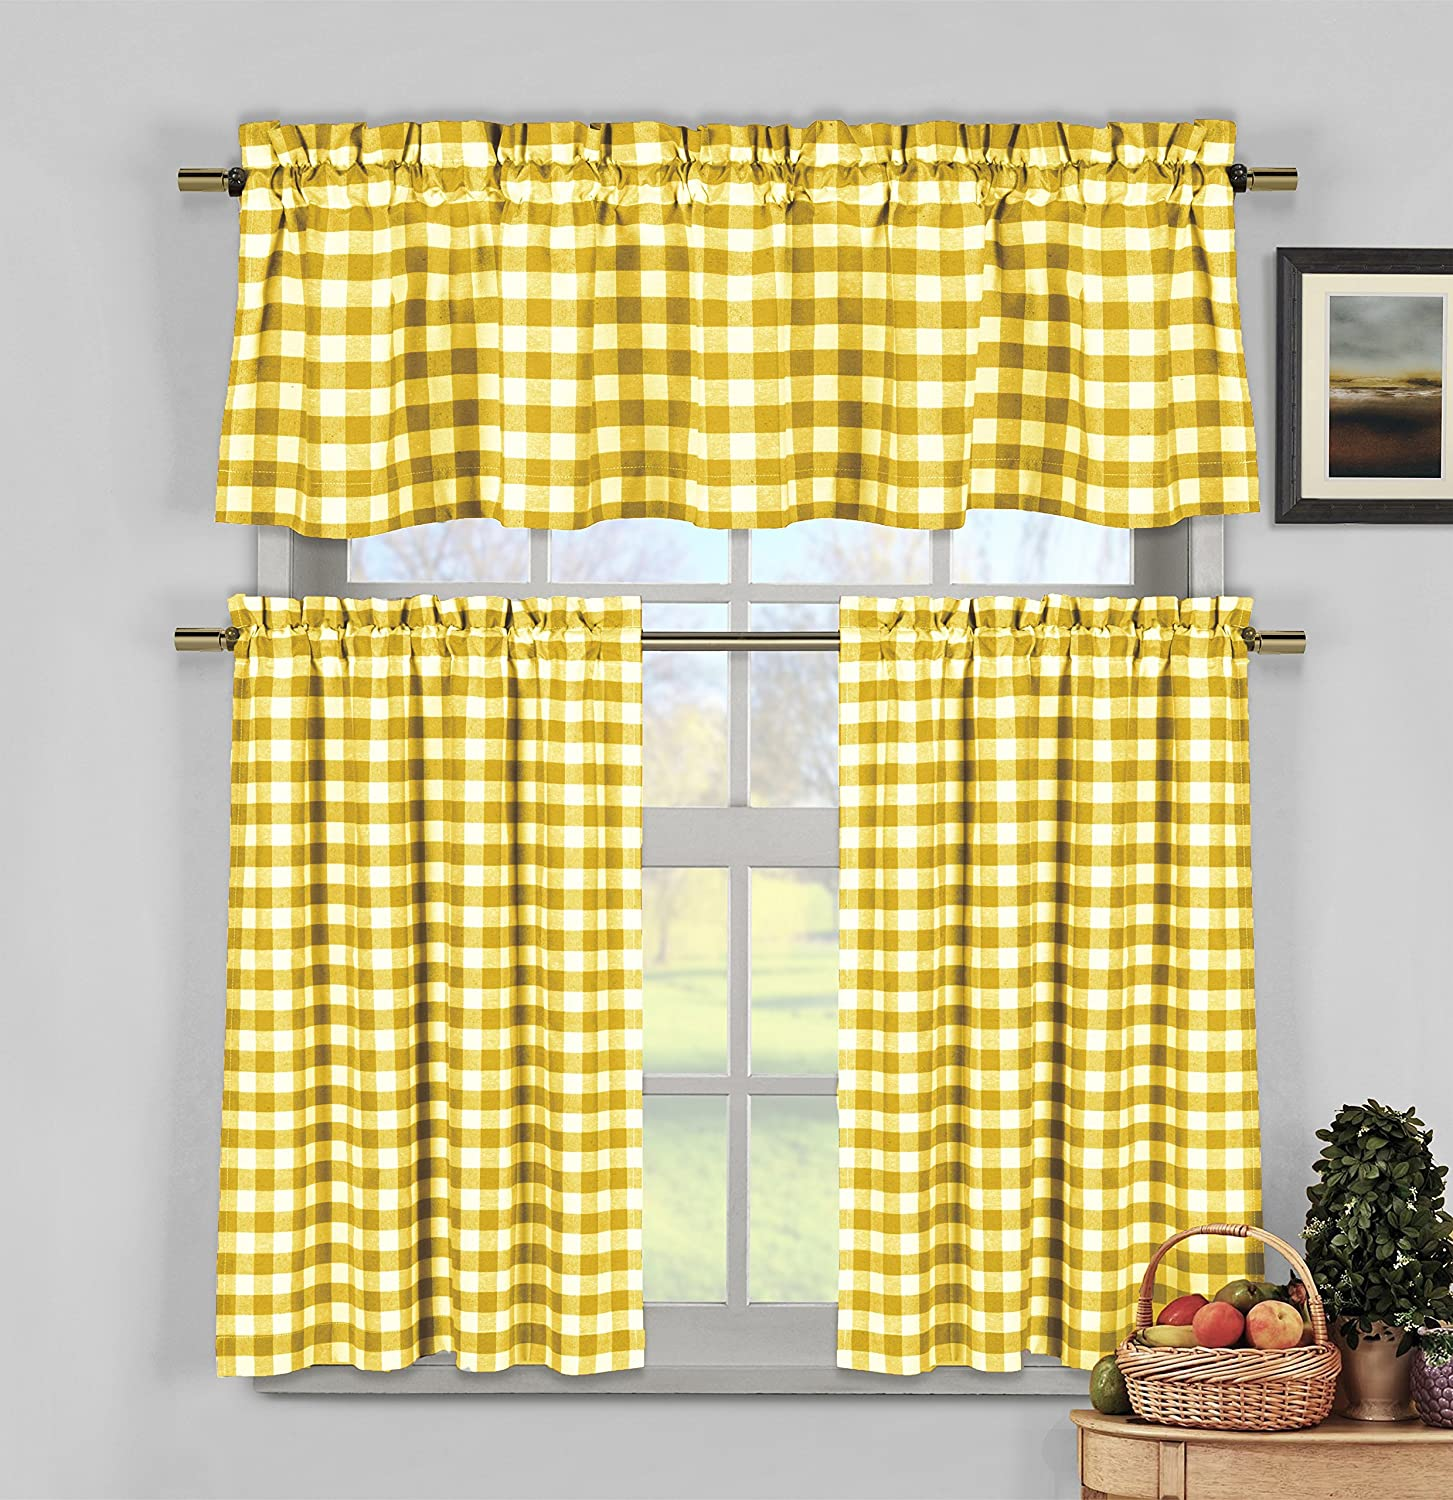 Amazon.com: 3 Piece Plaid, Checkered, Gingham 35% Cotton Kitchen Curtain  Set With 1 Valance And 2 Tier Panels (Yellow): Home U0026 Kitchen